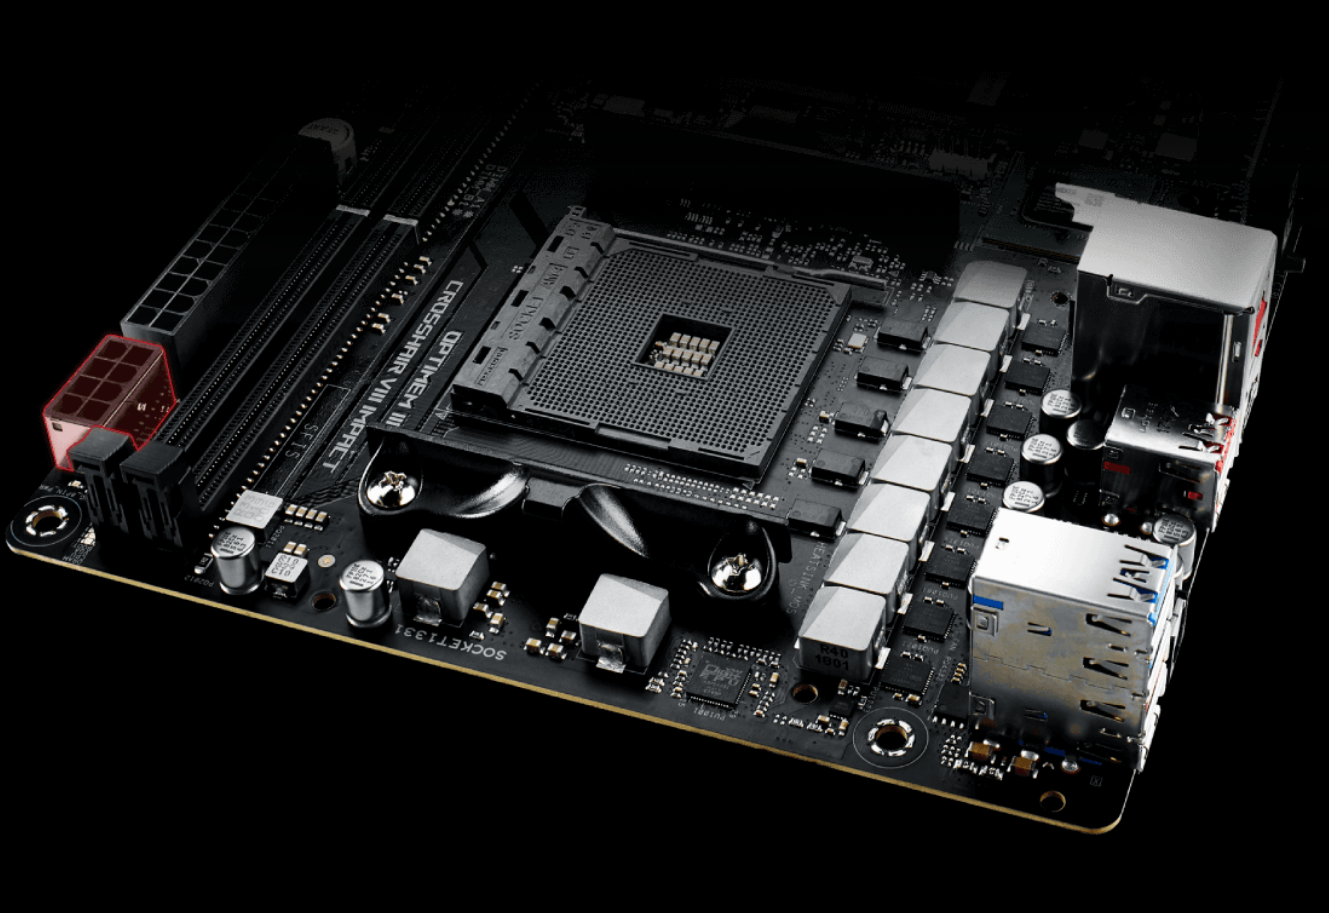 AMD Budget-Aimed A520 mATX & Mini-ITX Motherboards From ASRock ...